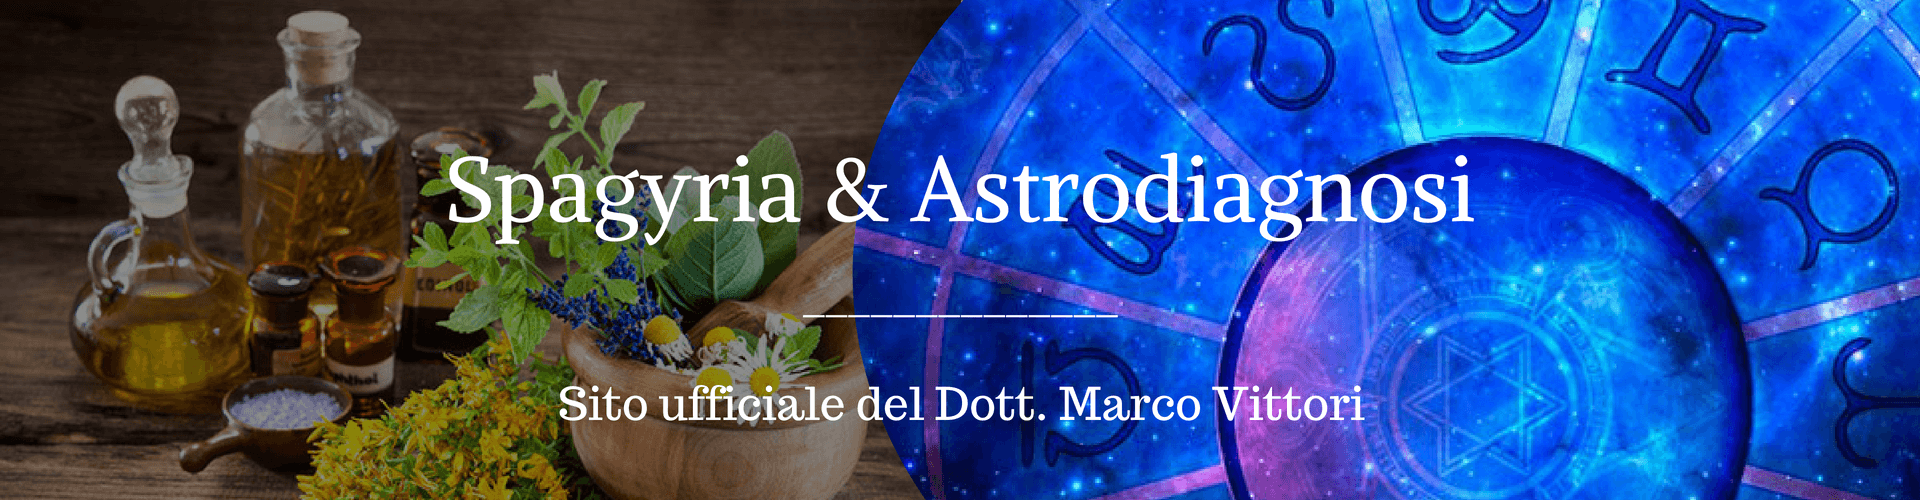 Categoria: spagiria e astrodiagnosi